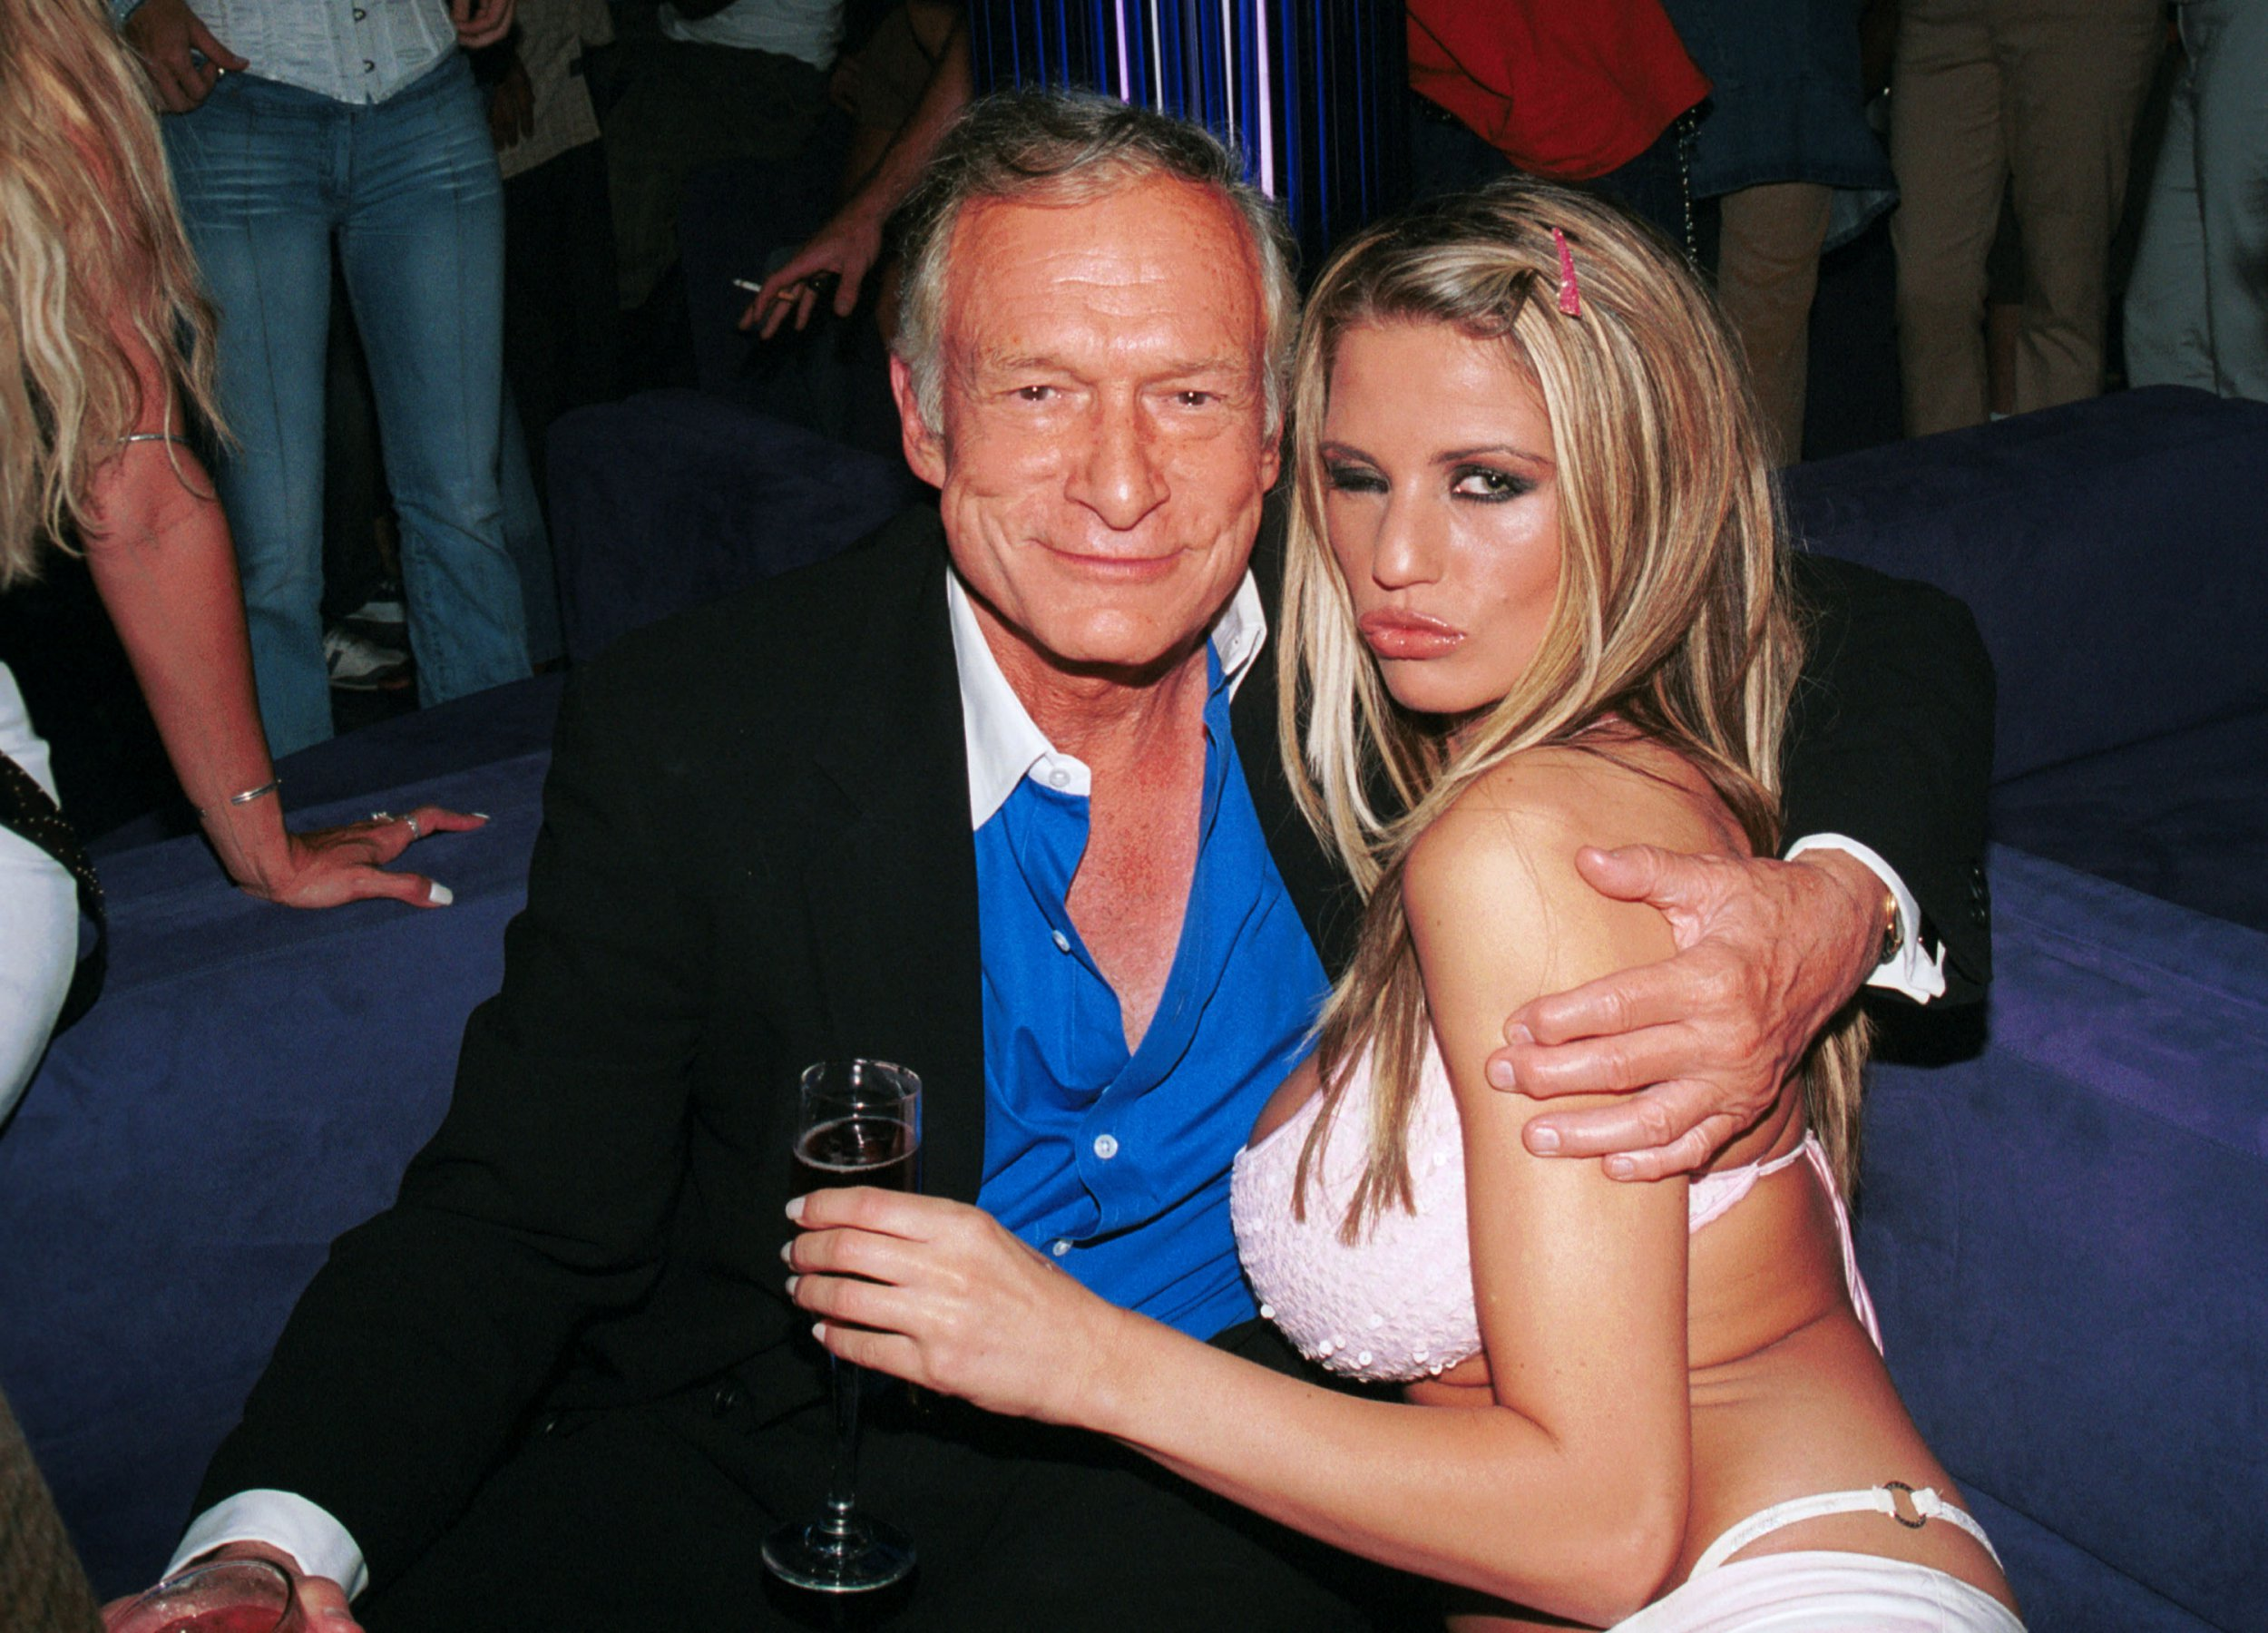 Katie Price says she watched Hugh Hefner have sex with girlfriends at the Playboy mansion, but denies sleeping with him herself